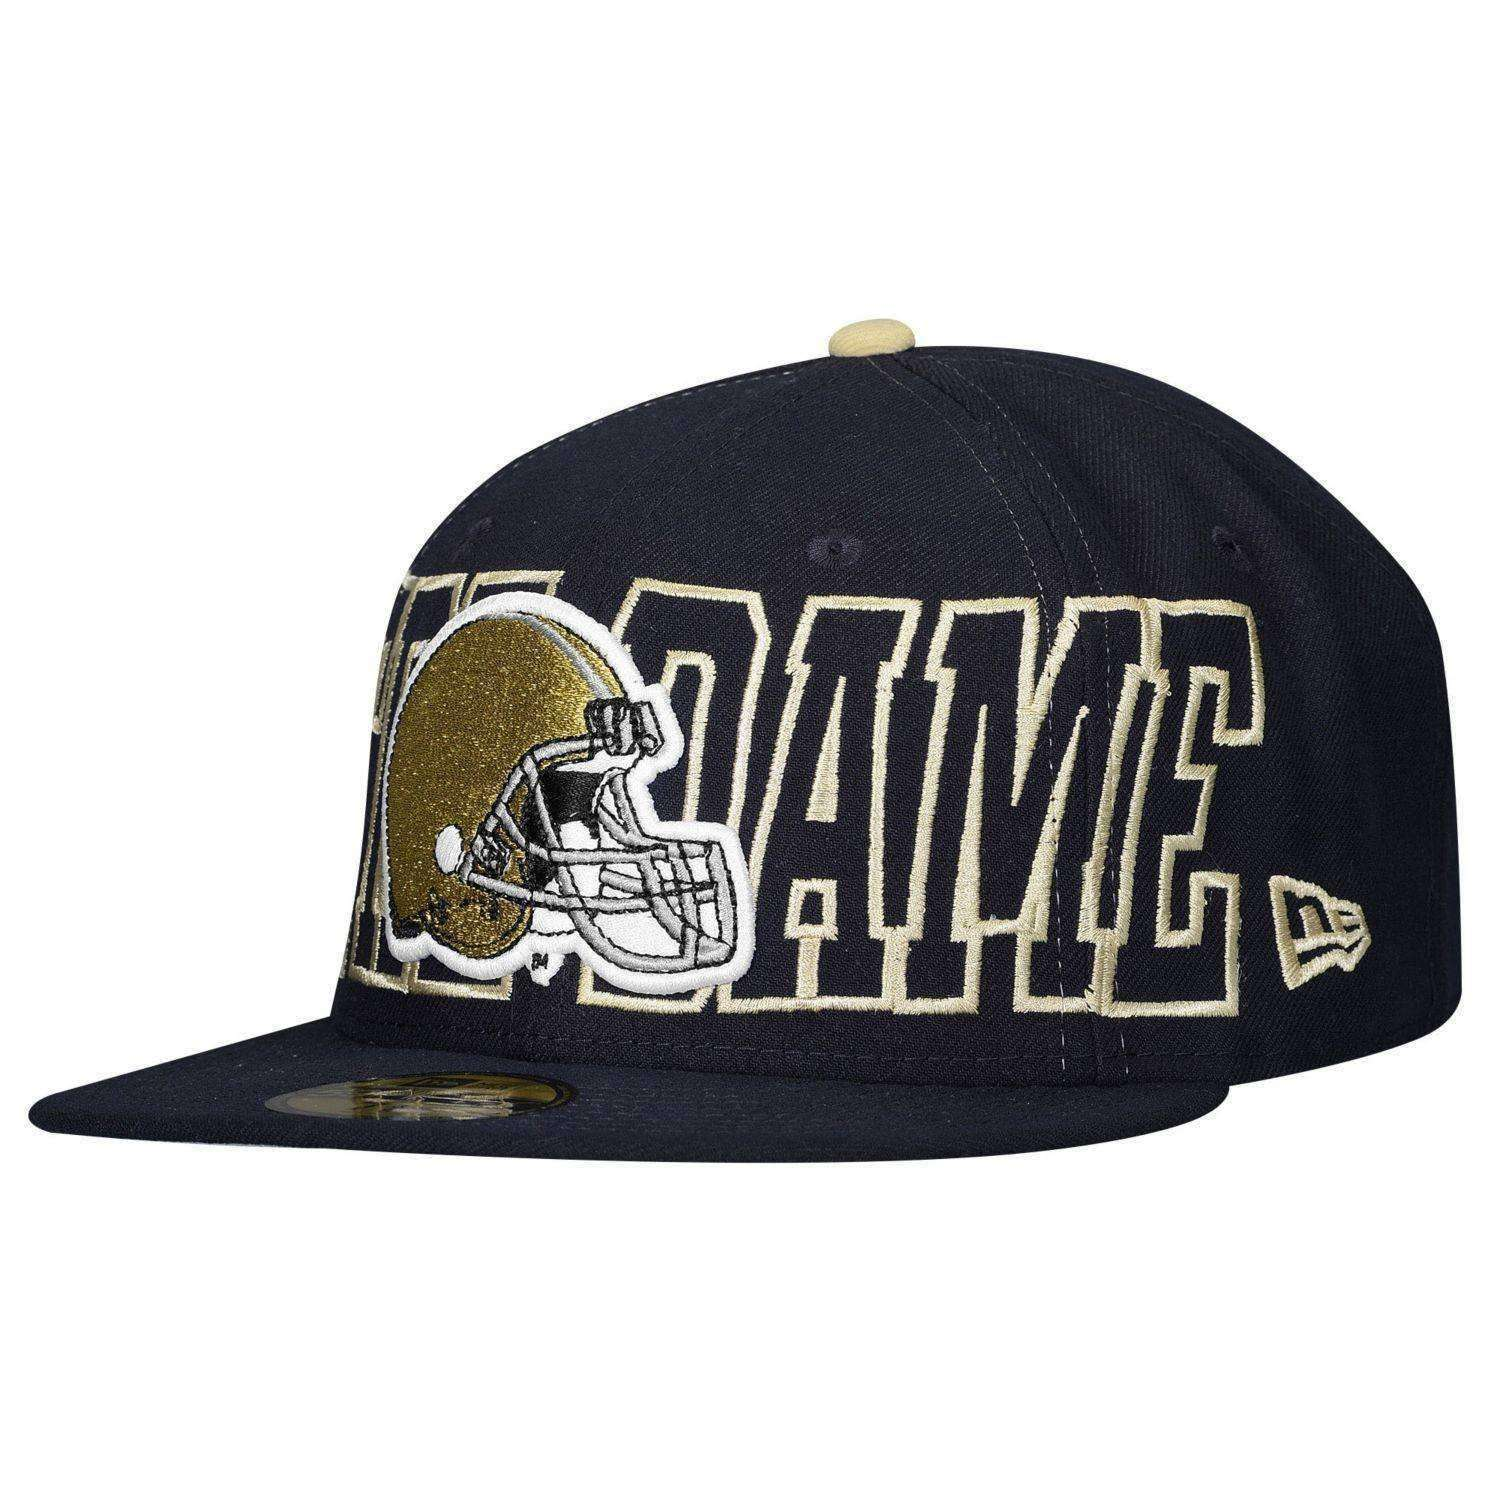 Notre Dame Fighting Irish Football Helmet 59Fifty Hat by New Era. Notre Dame  Fighting Irish Football Helmet 59Fifty Hat by New Era ade75b956c8